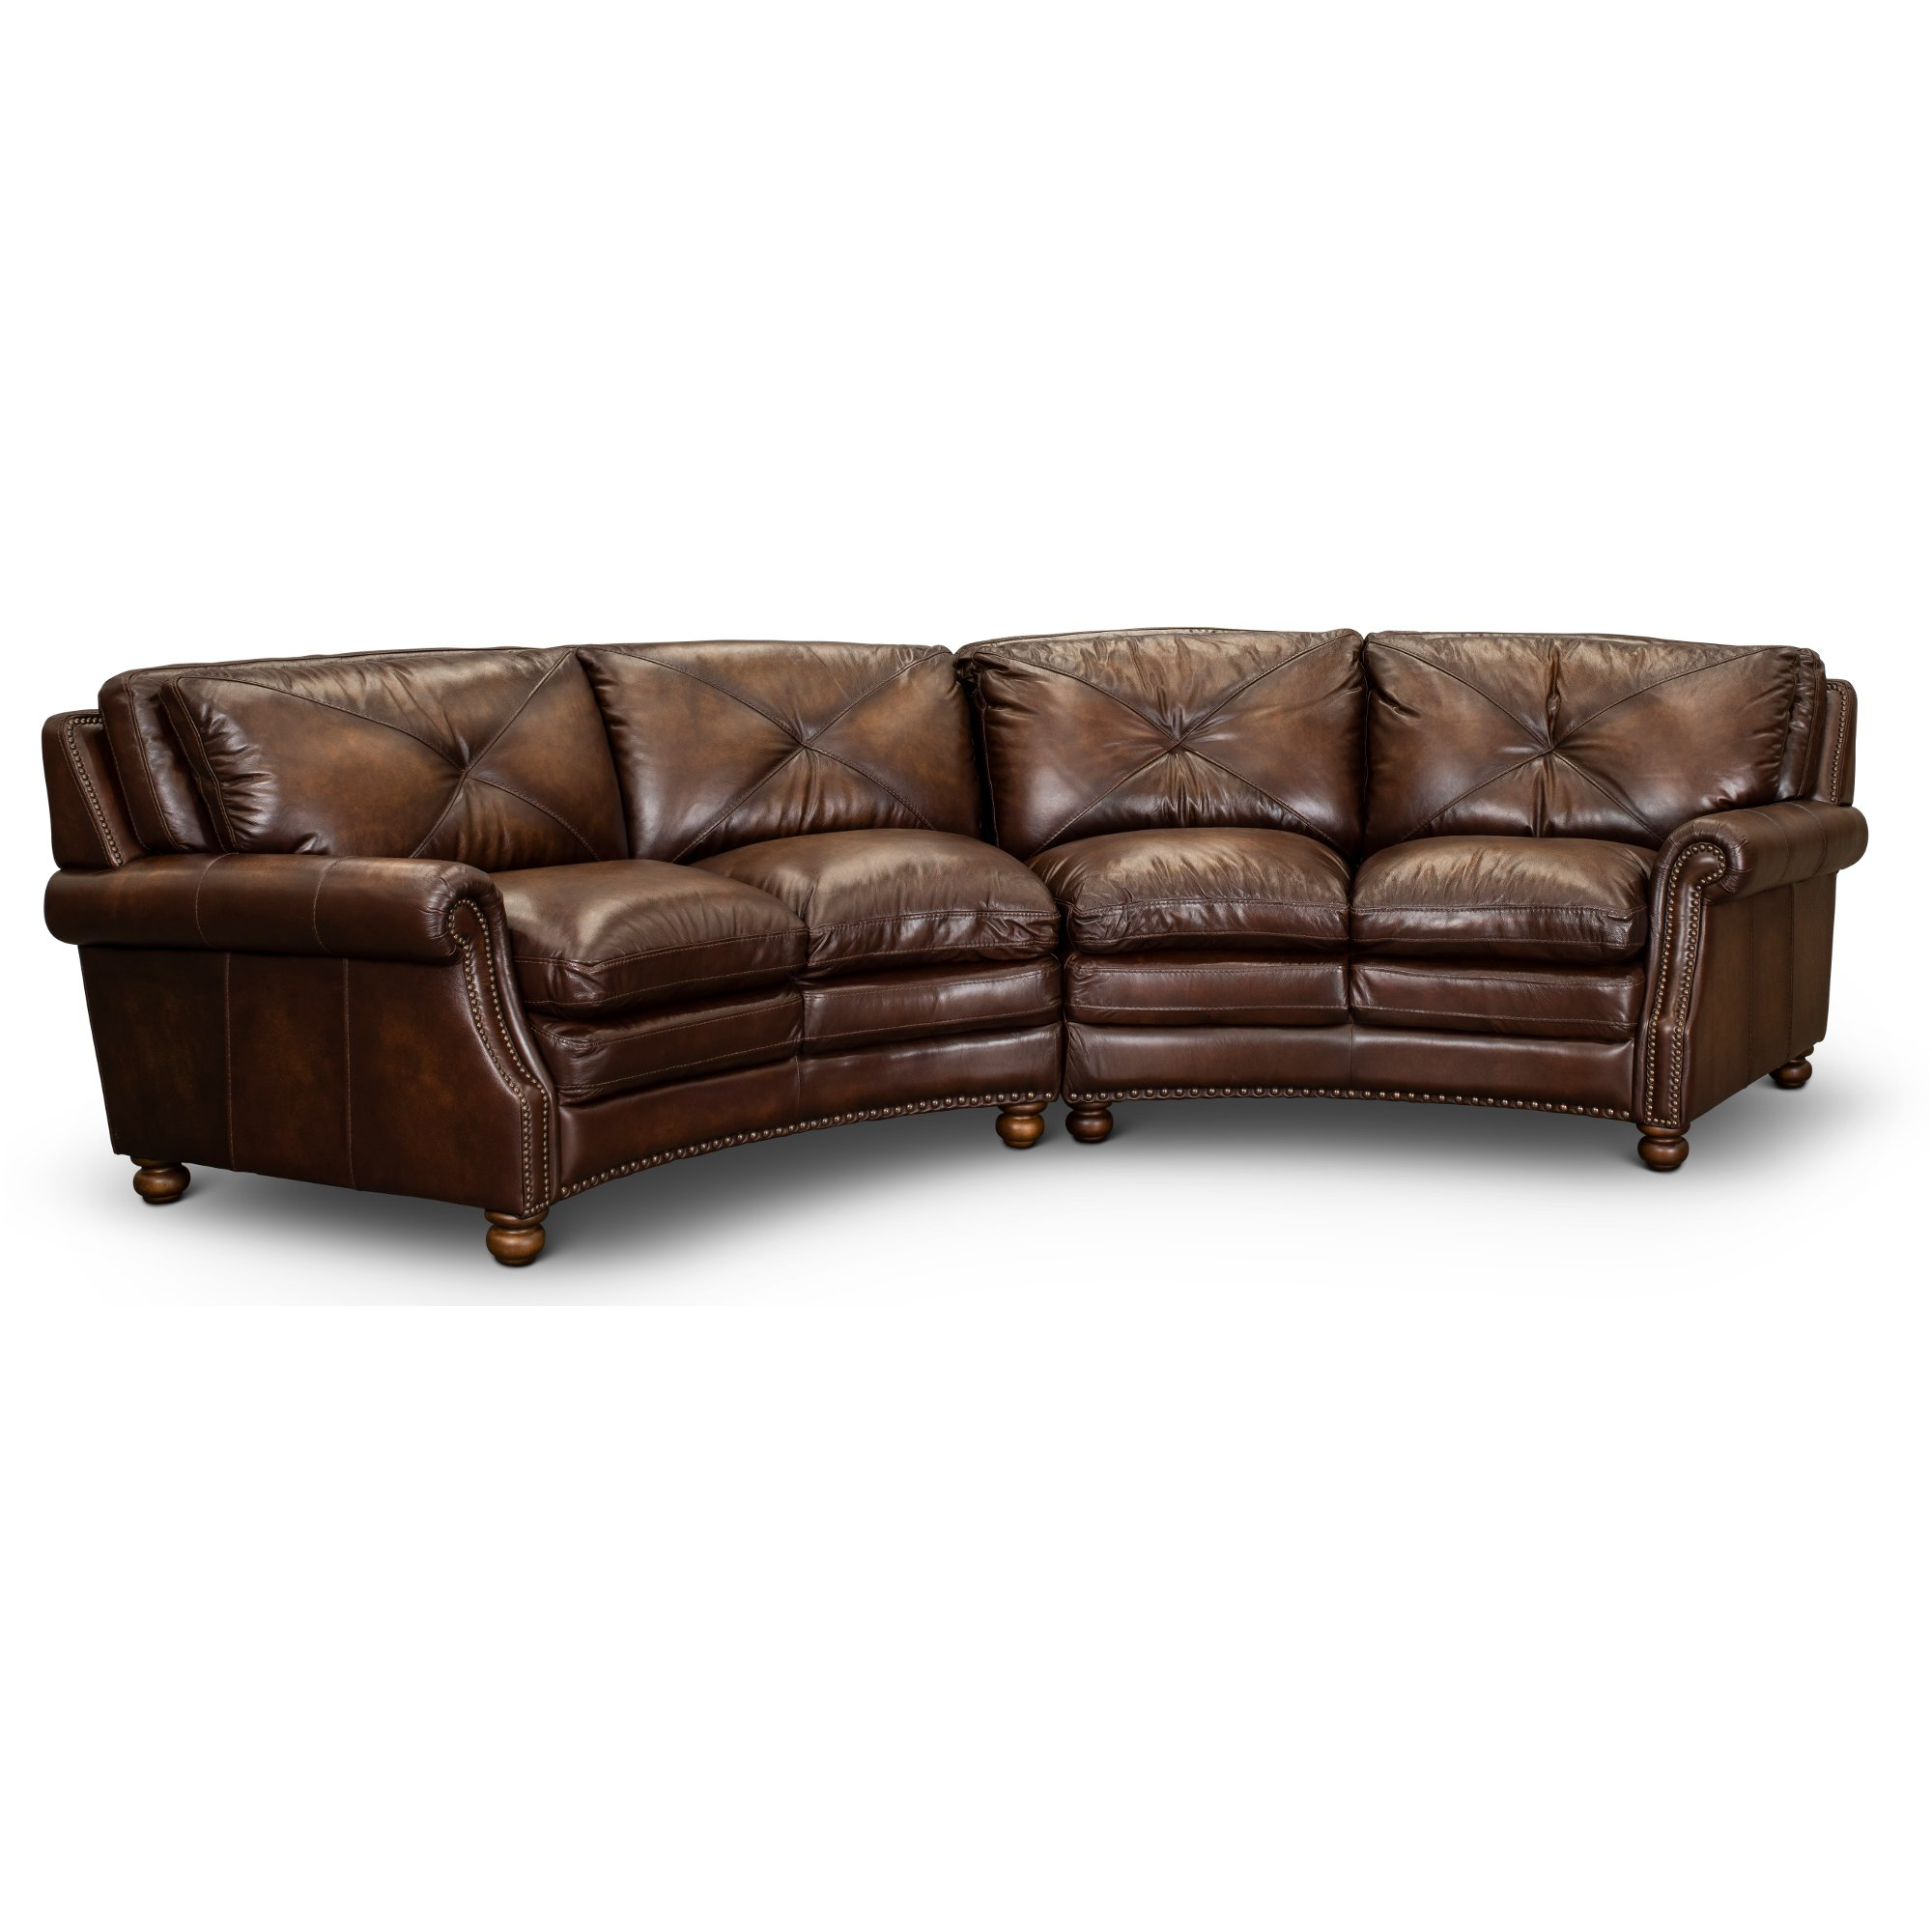 Fabulous Classic Brown Leather 2 Piece Sectional Suffolk Ibusinesslaw Wood Chair Design Ideas Ibusinesslaworg